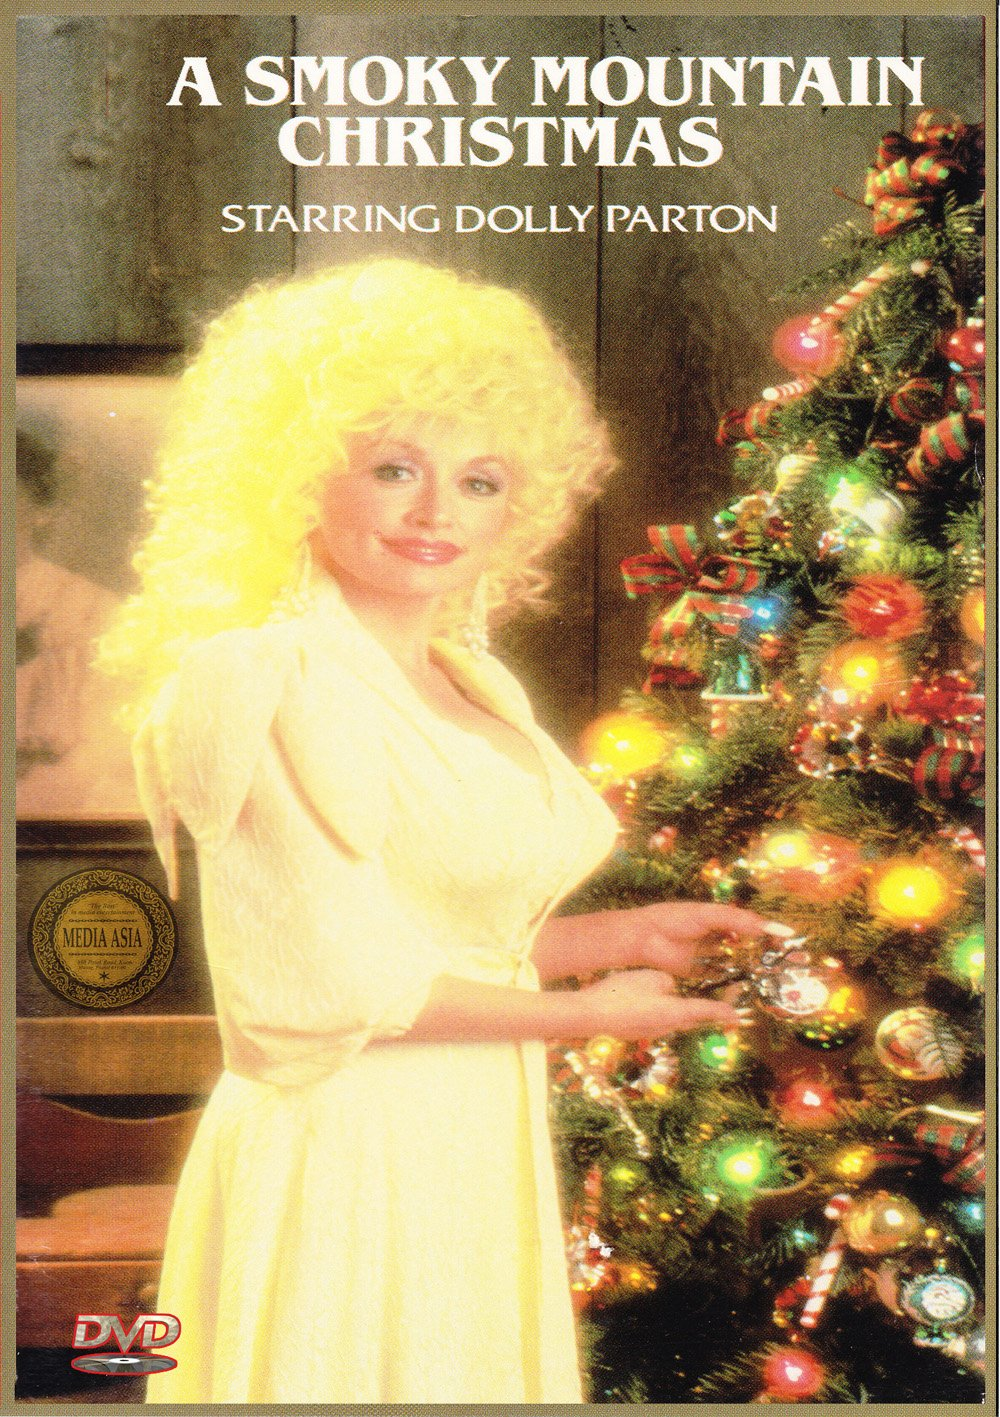 A Christmas movie staring a national treasure: Dolly Parton in A Smoky Mountain Christmas. | The Dating Divas